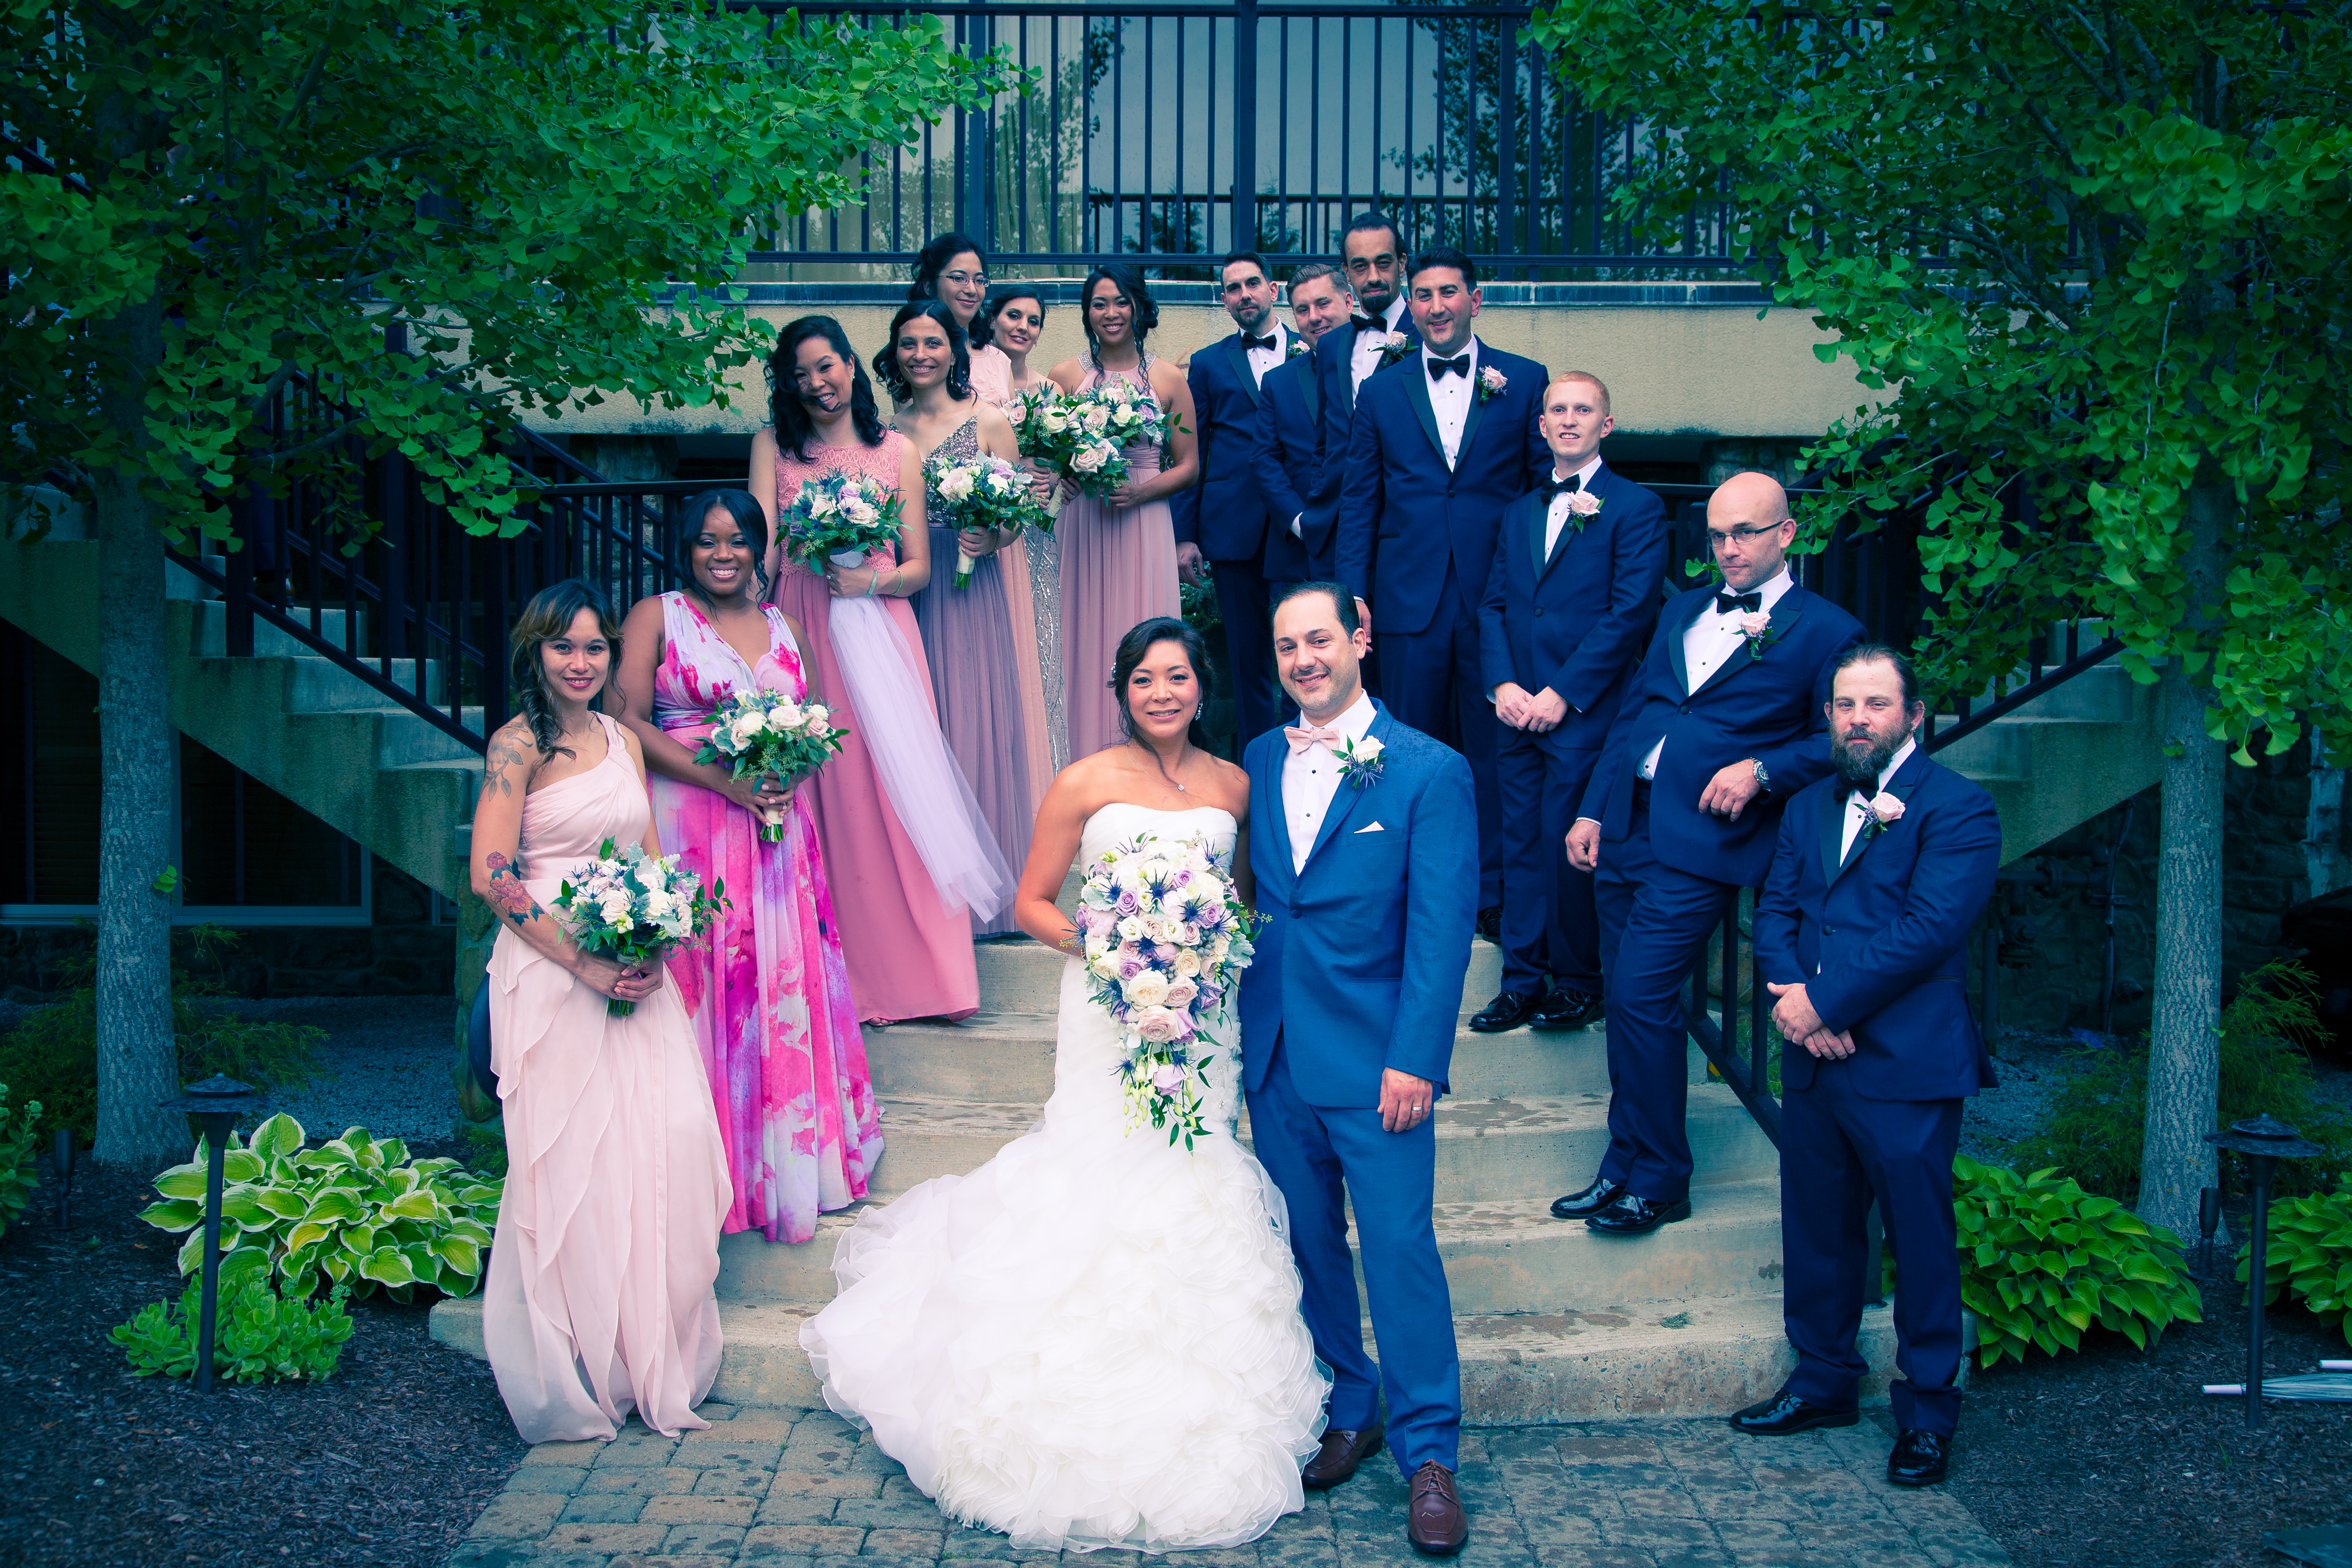 Wedding Photography in Minerals Hotel in Vernon New Jersey